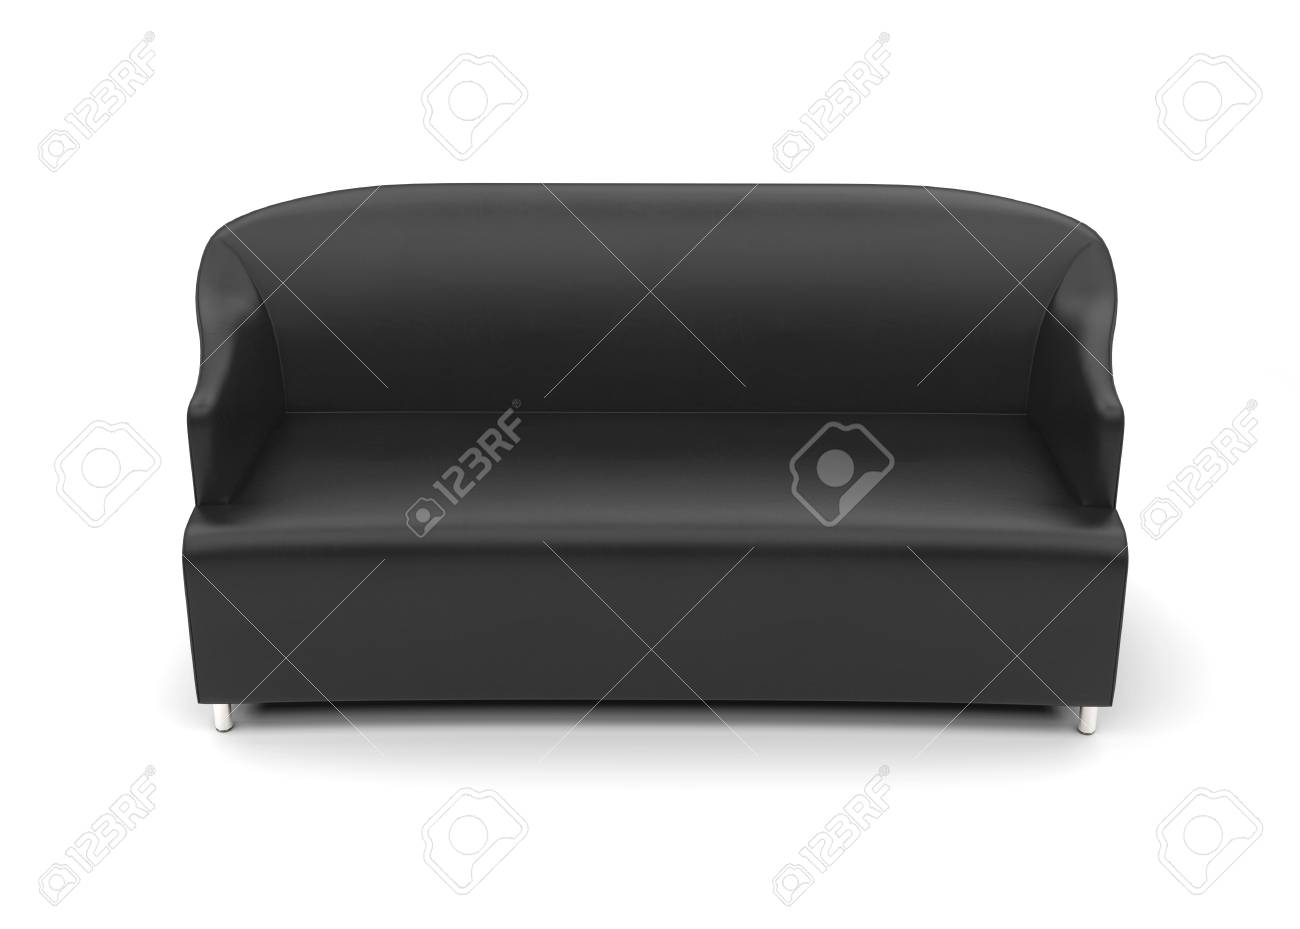 Swell Black Leather Sofa Top View On White Background 3D Render Machost Co Dining Chair Design Ideas Machostcouk